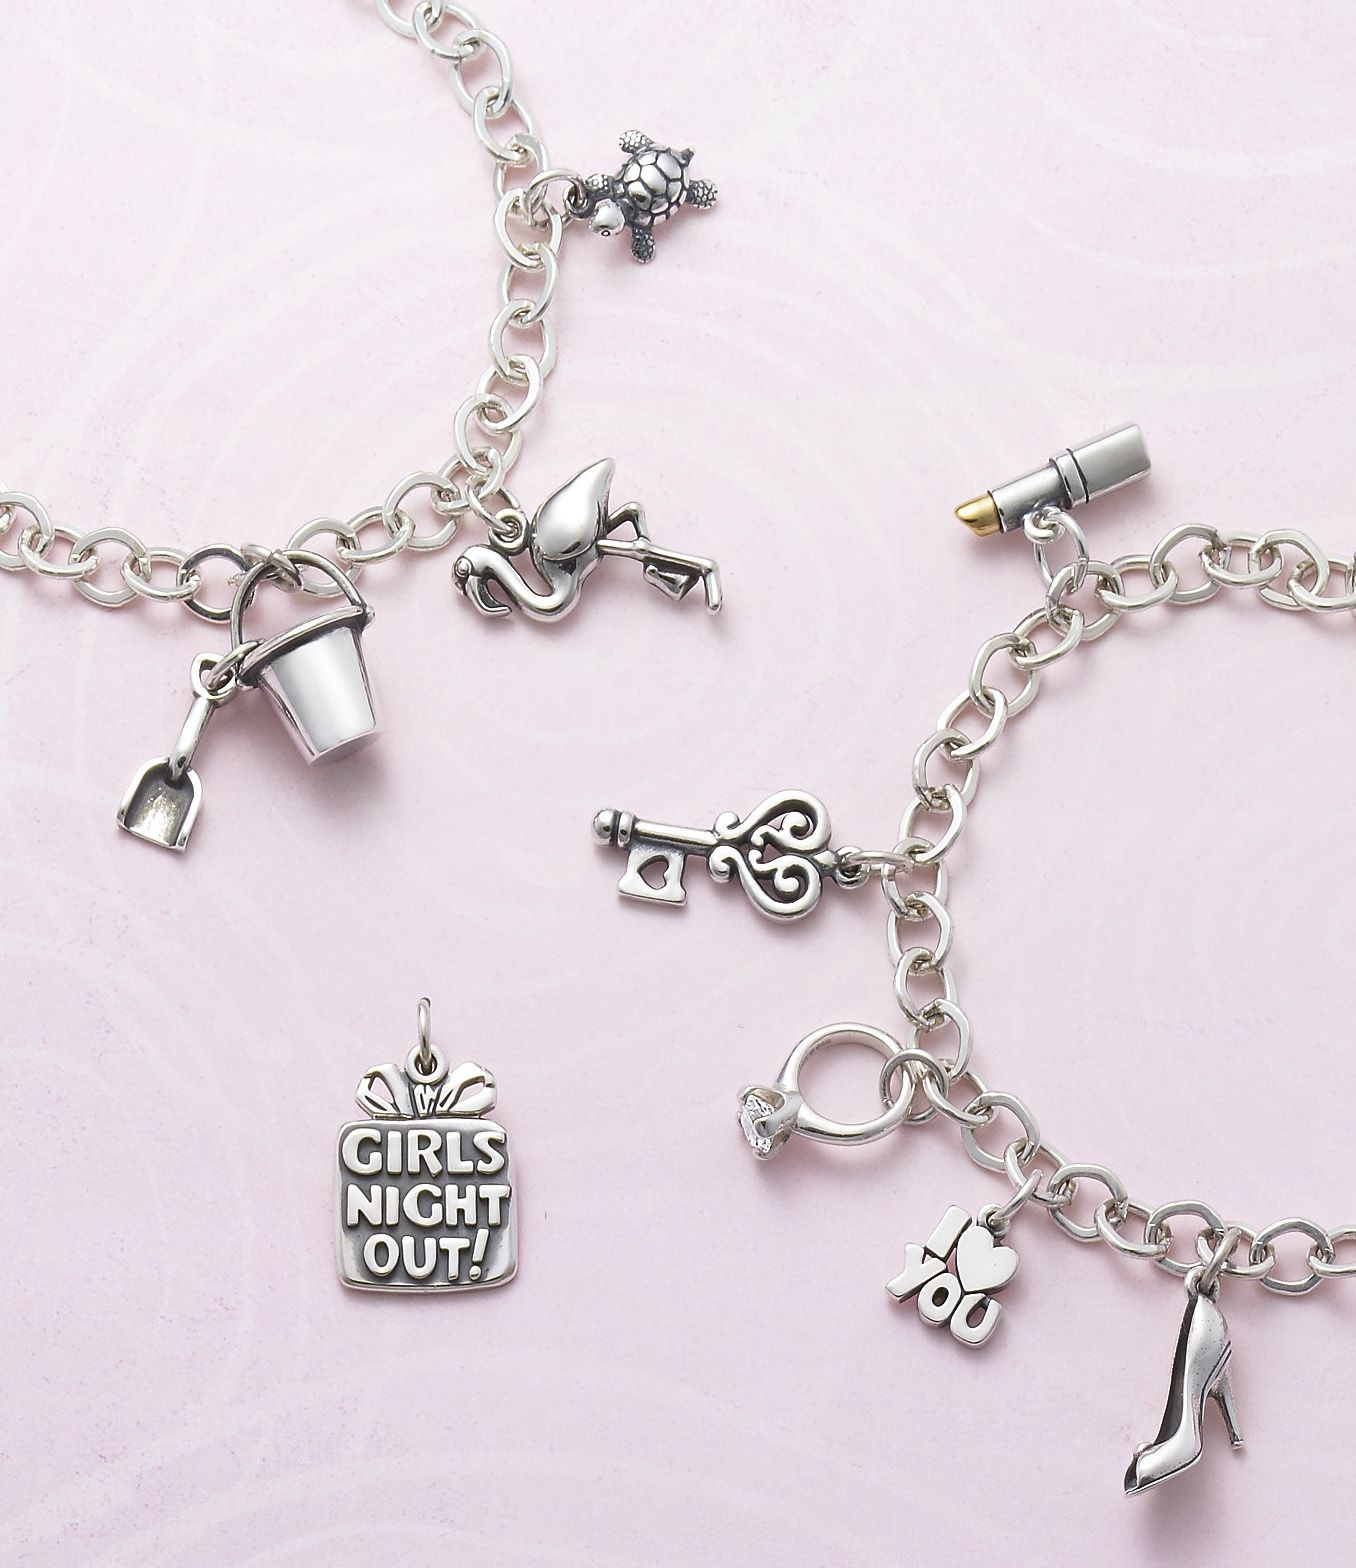 Fun Charms From James Avery In 2019 James Avery Jewelry